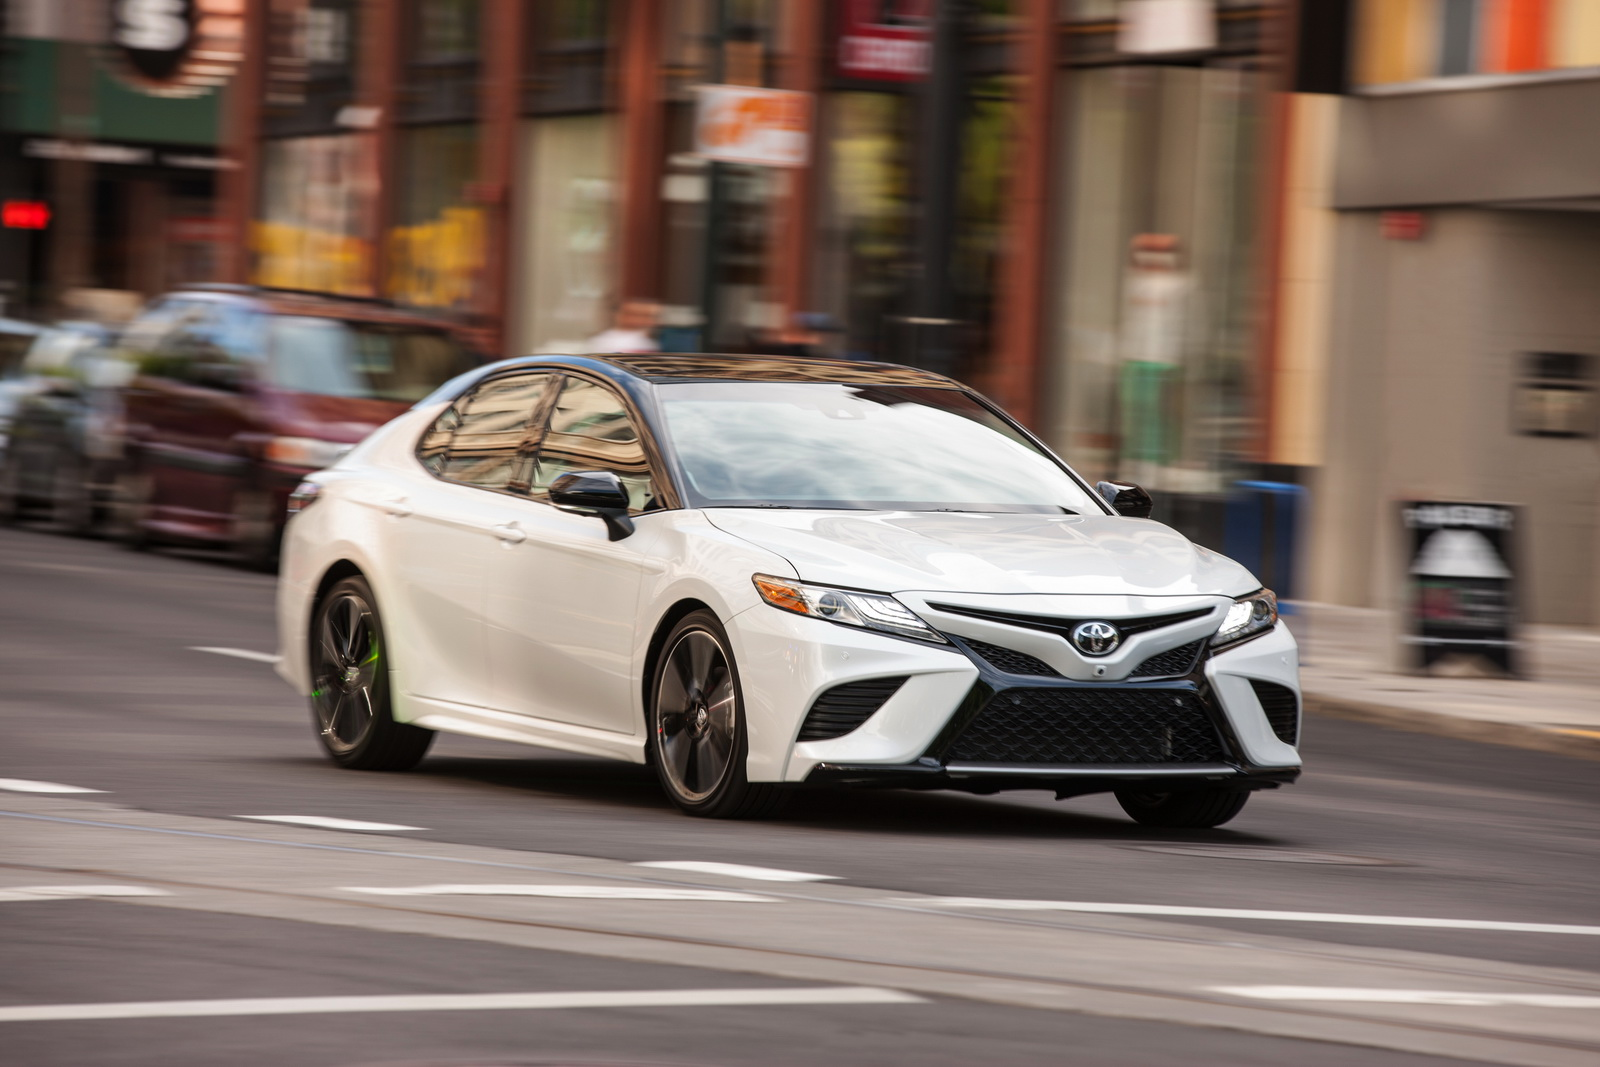 2018 Toyota Camry Detailed Ahead Of Summer Launch [56 Pics]